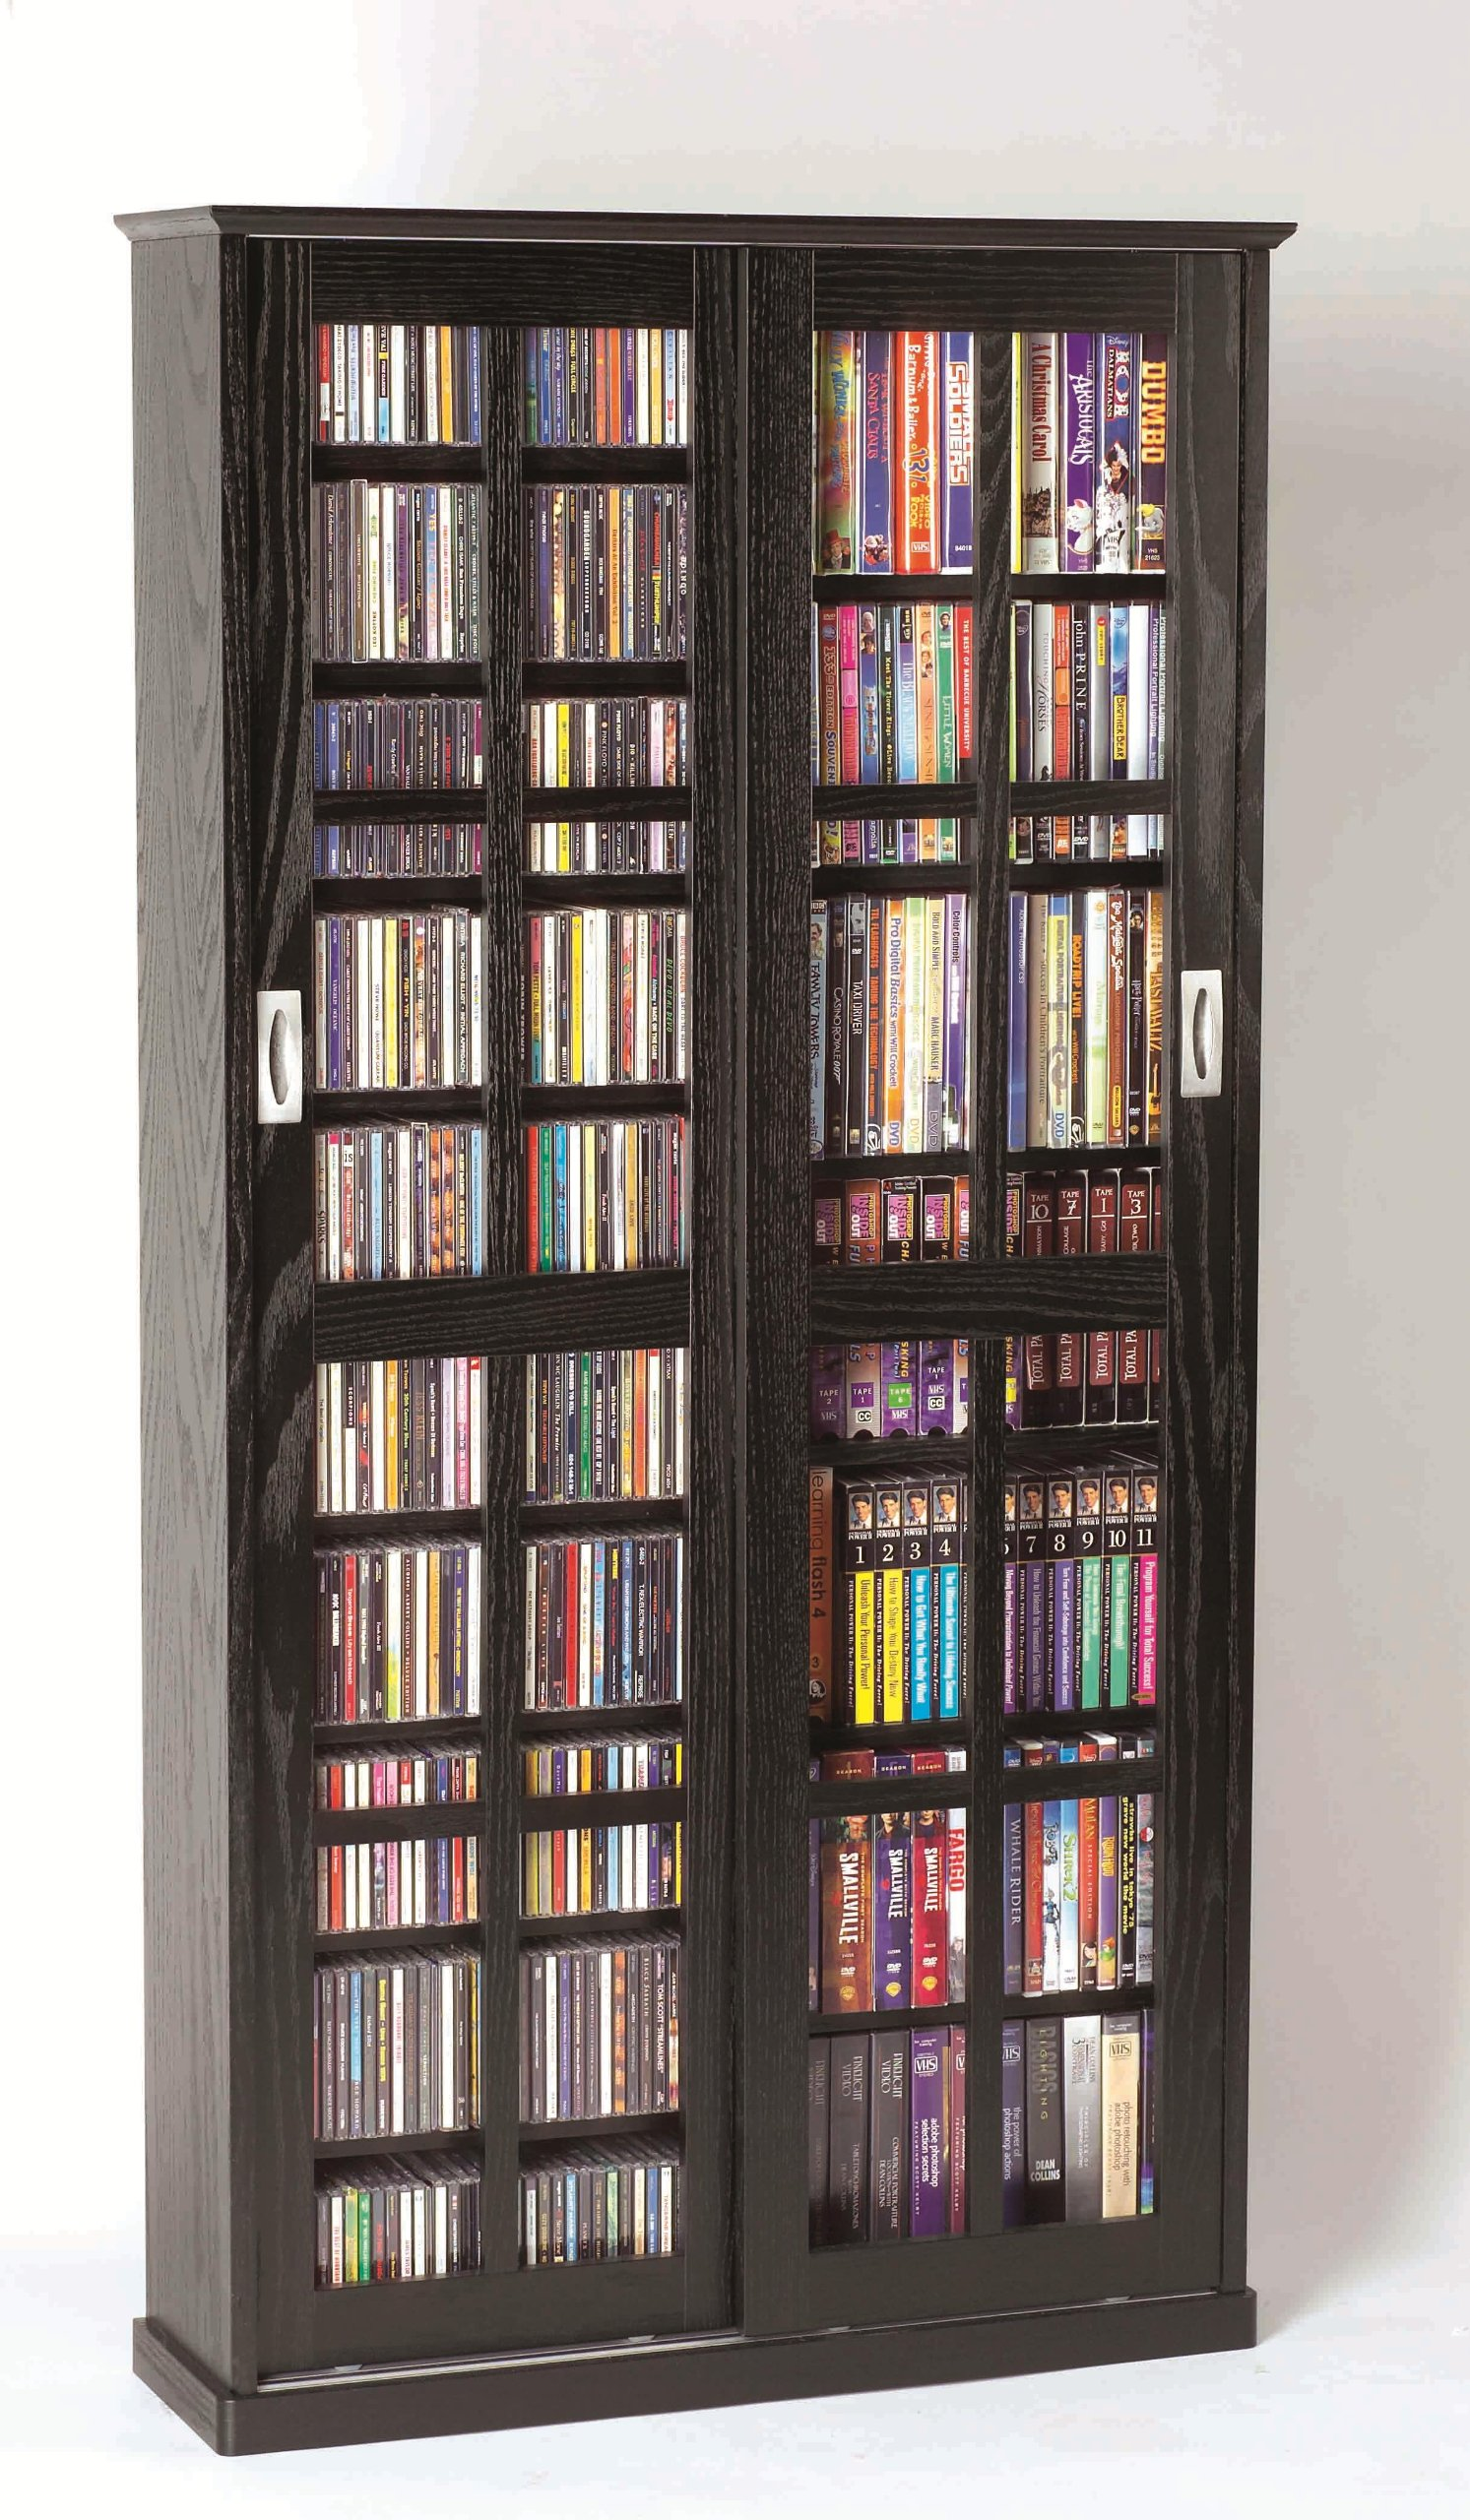 Leslie Dame MS-700B Sliding Glass Mission Style Door CD Storage Cabinet, Black by Leslie Dame Enterprises